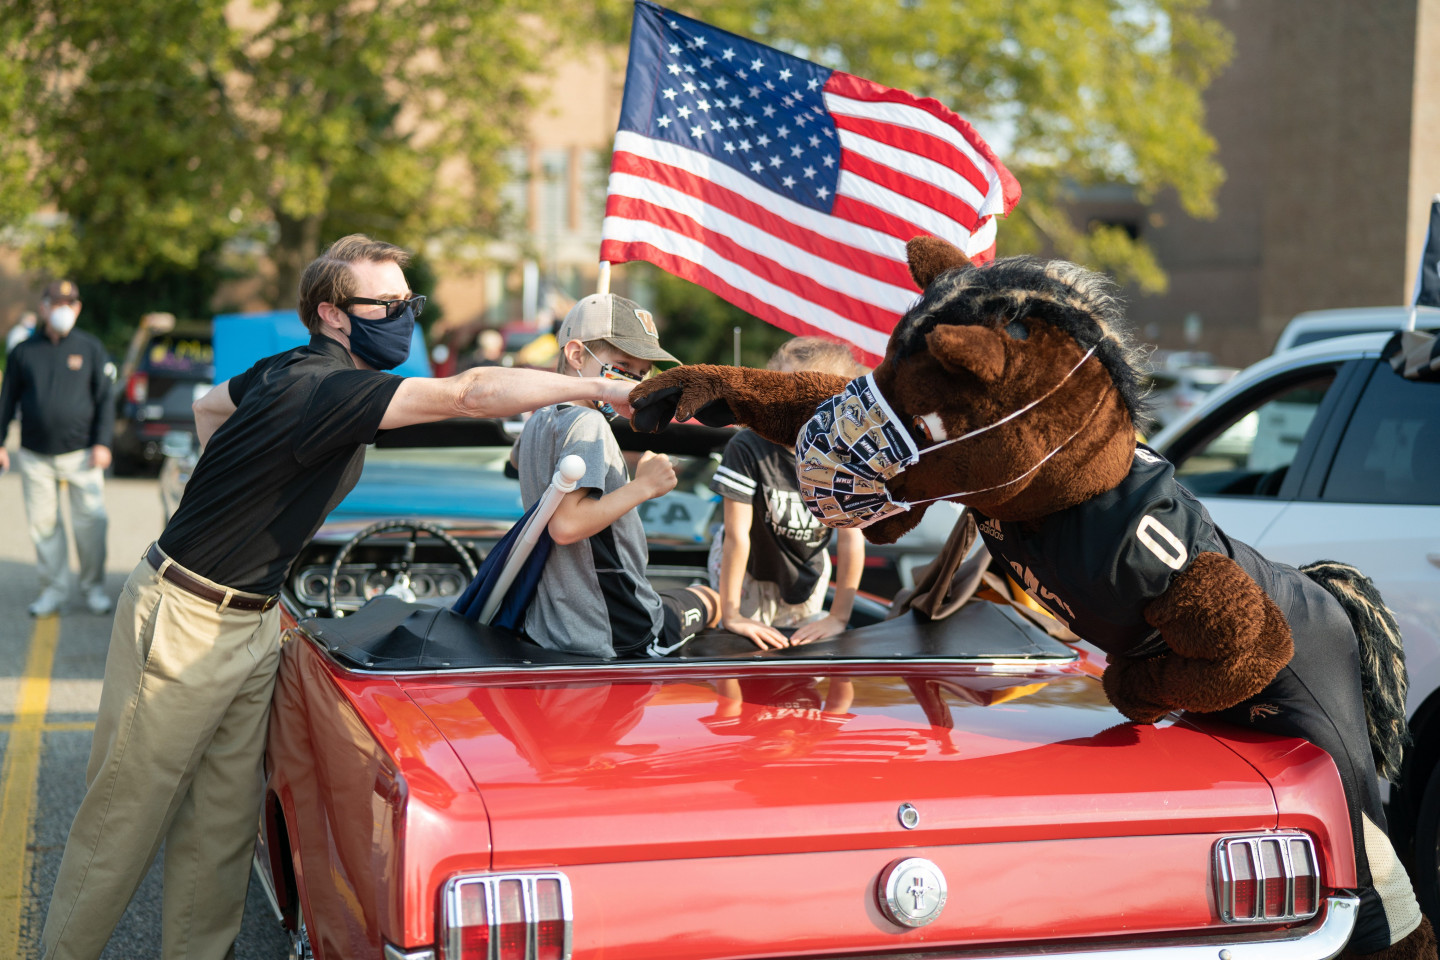 Buster Bronco bumps fists with a person during the parade.